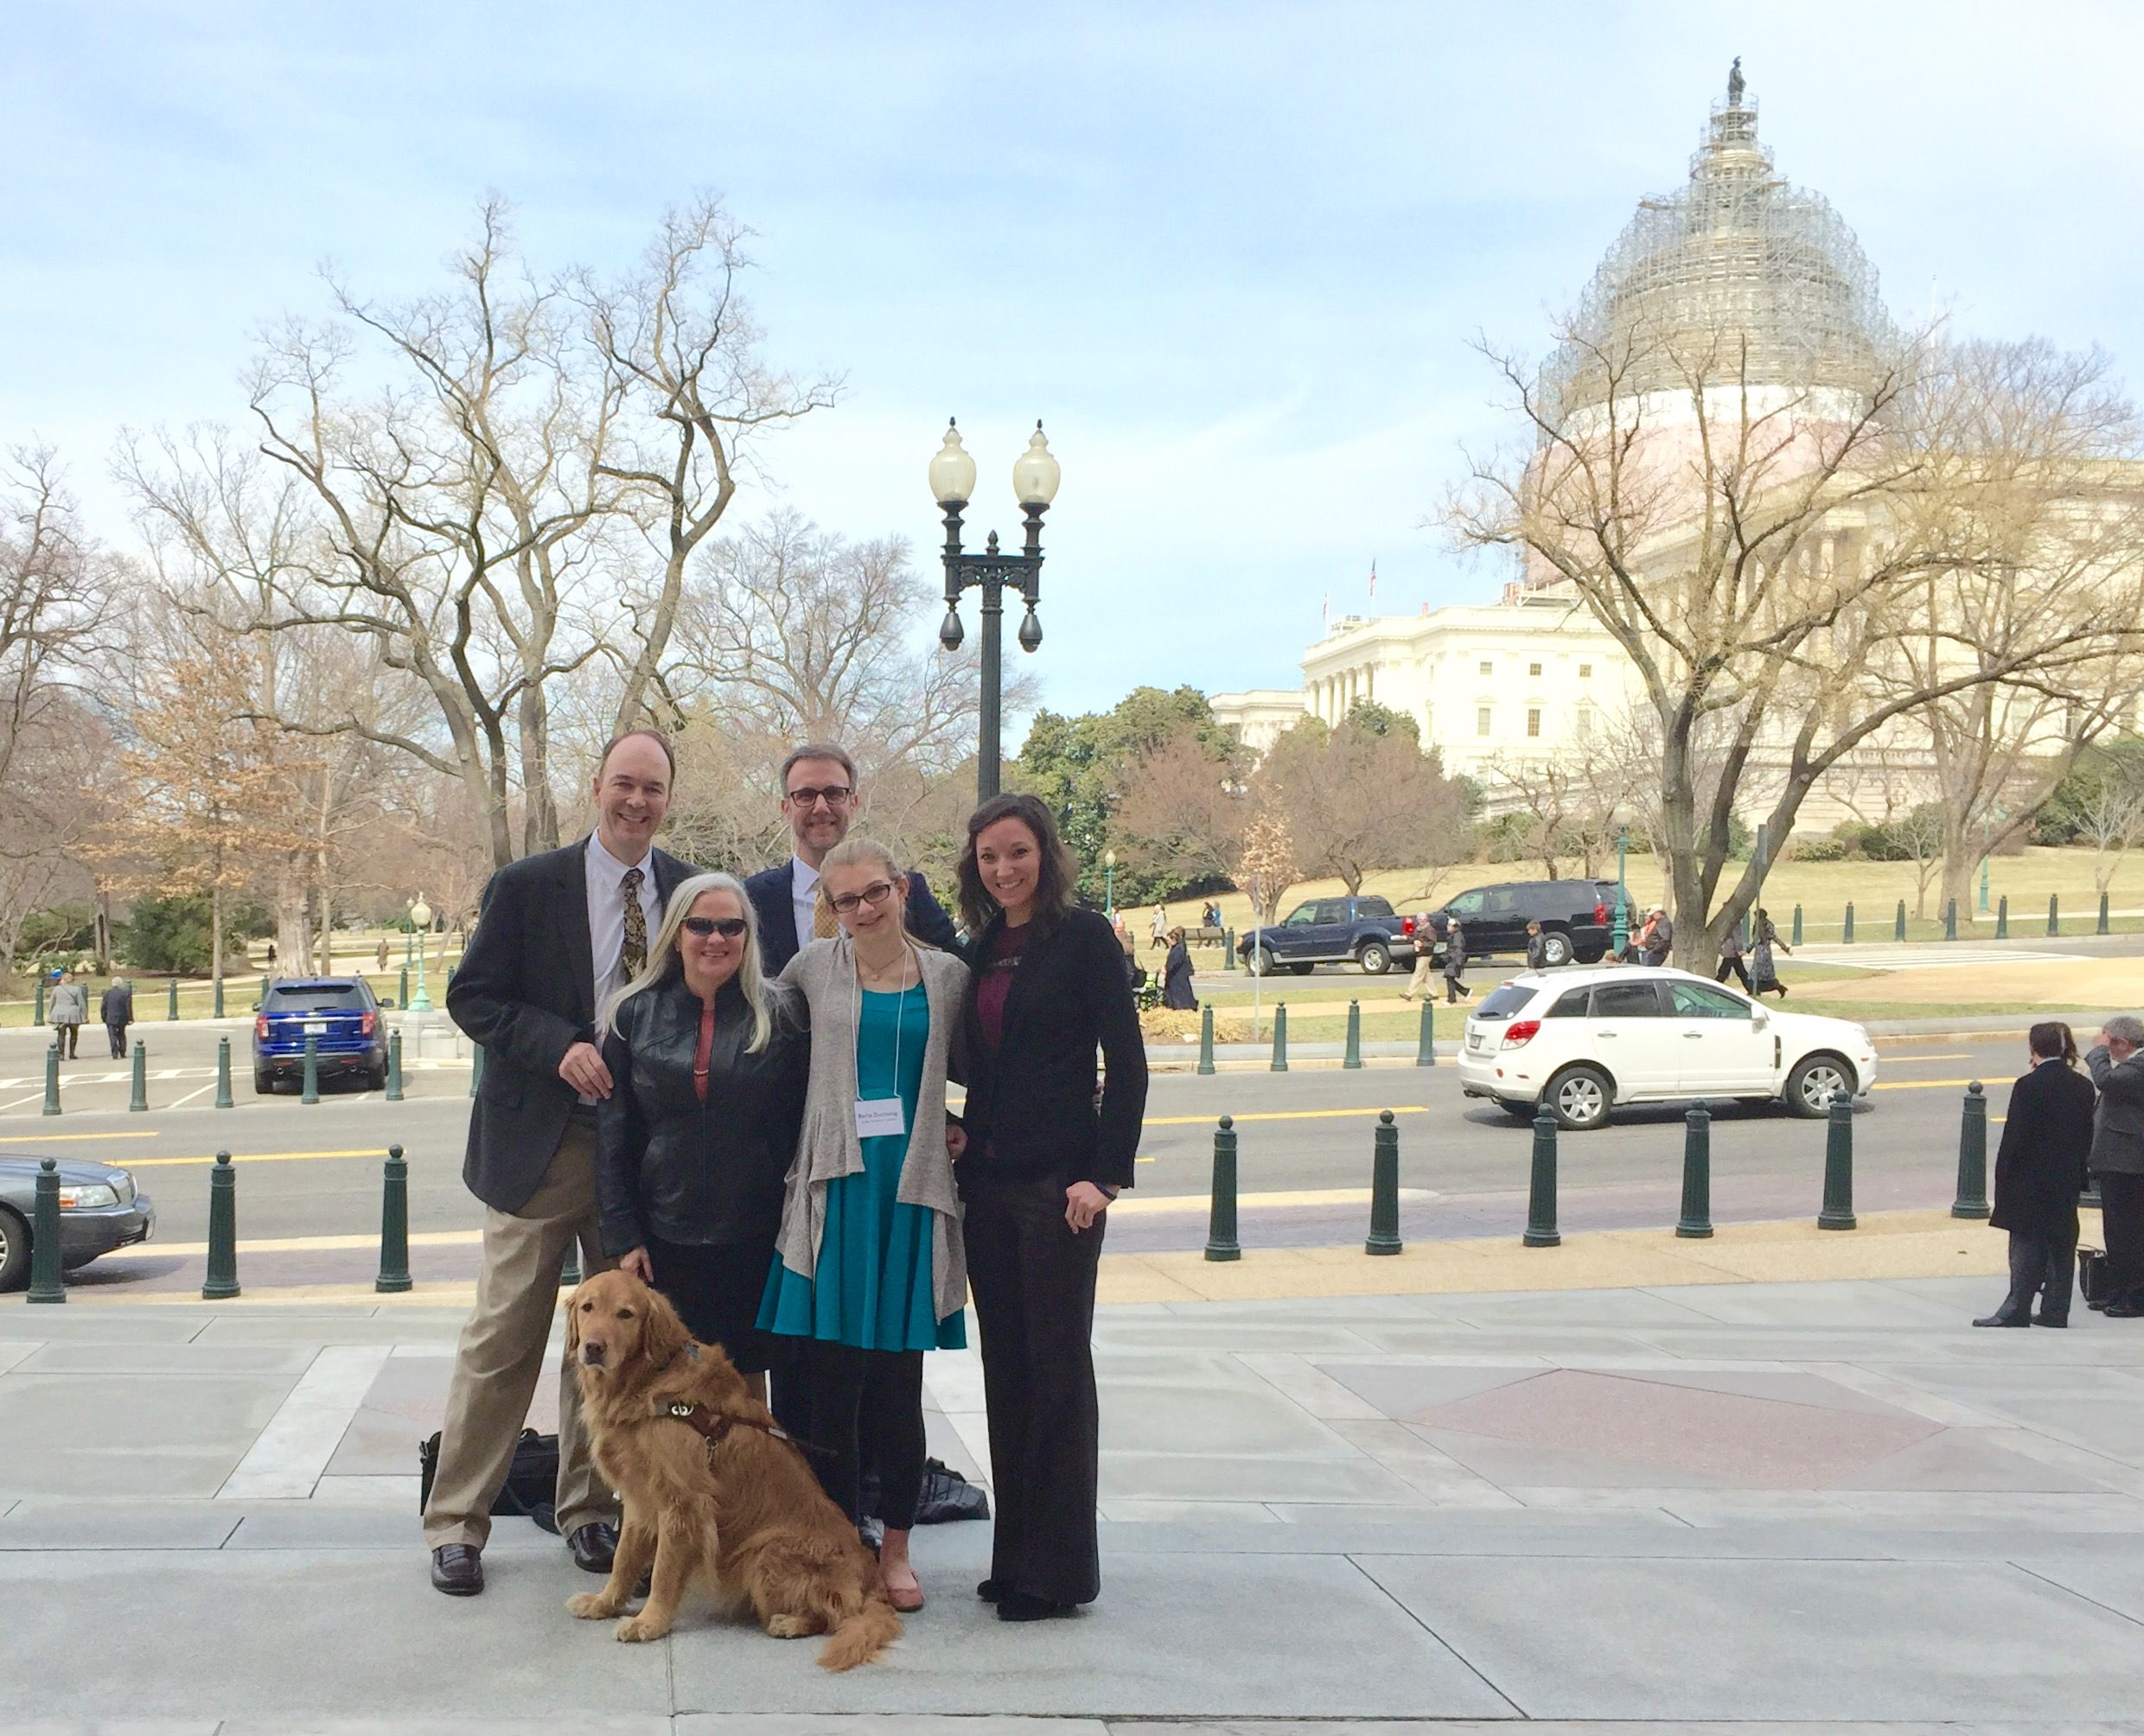 A picture of Mark Dunning, Dr. Edwin Stone, Bella Dunning, Moira M. Shea, and Krista Vasi in Washington DC